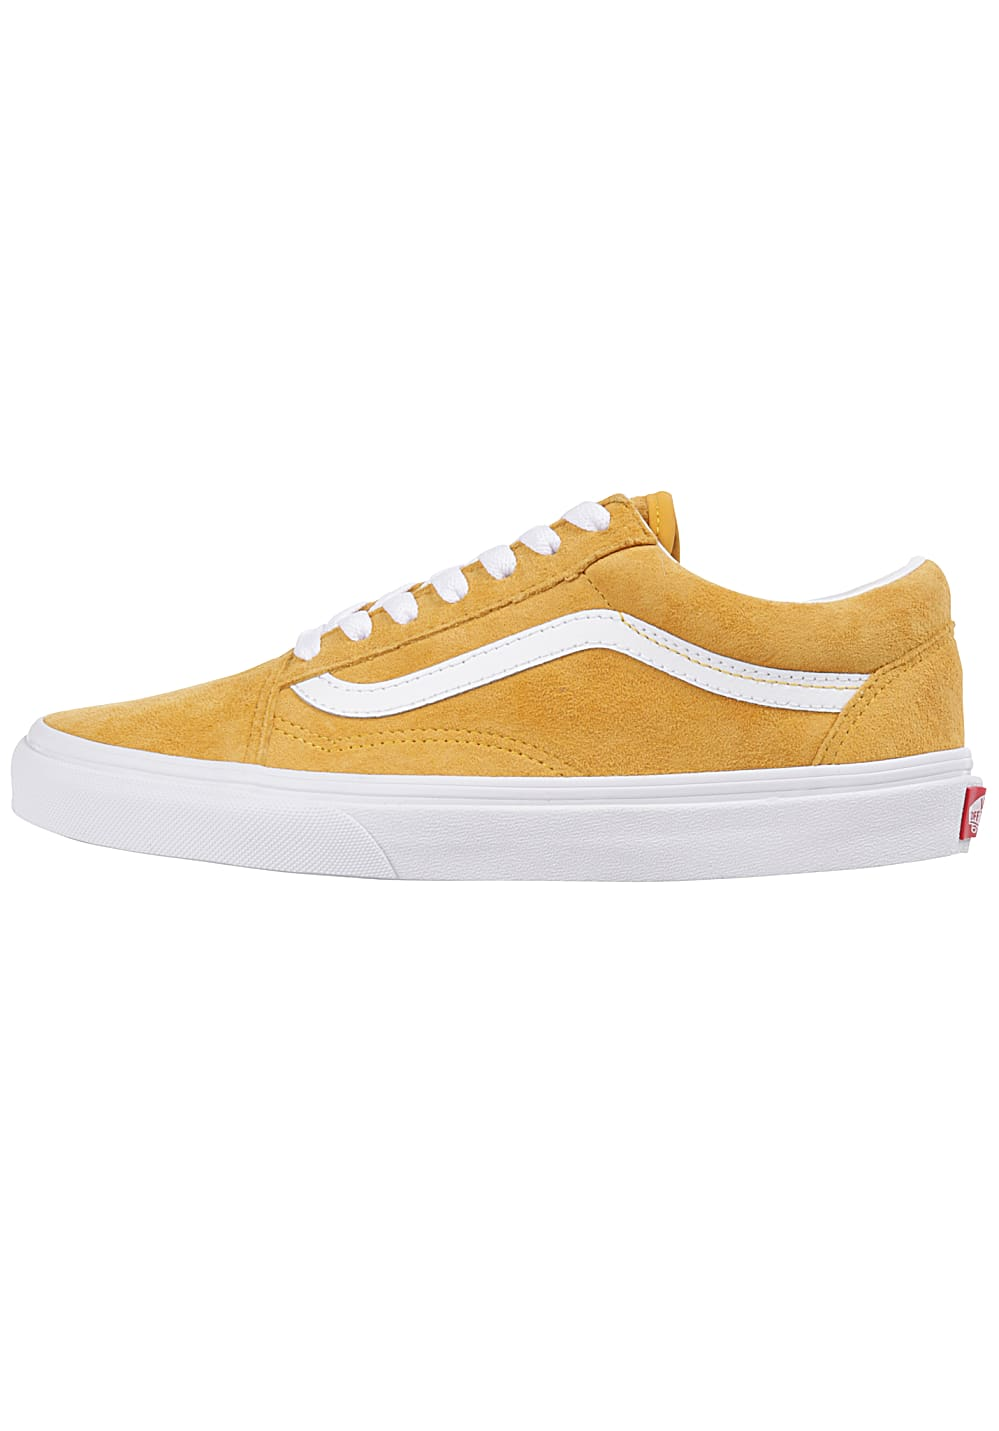 Vans Old Skool Baskets pour Femme Jaune Planet Sports